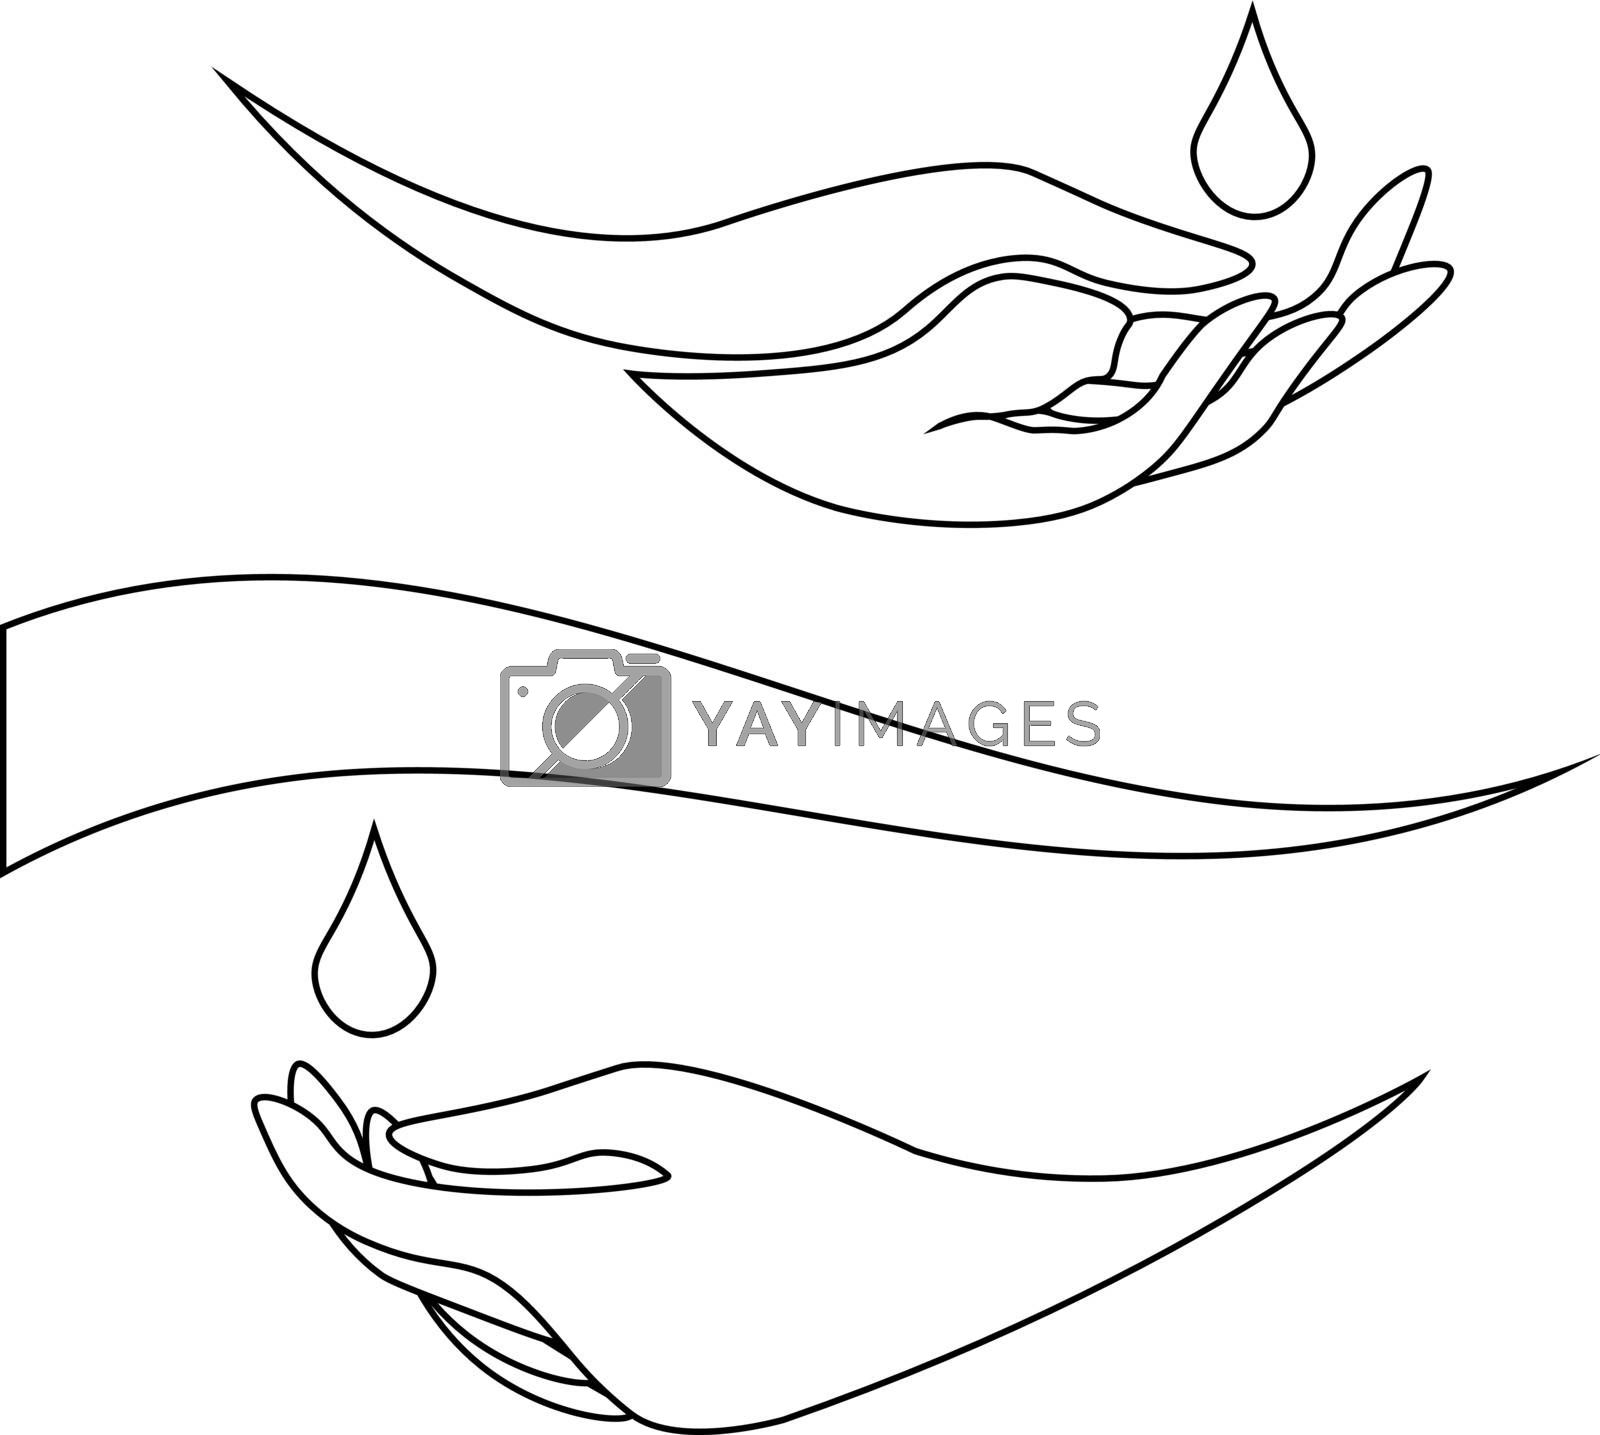 Simple monochrome line art of two hands with water drops